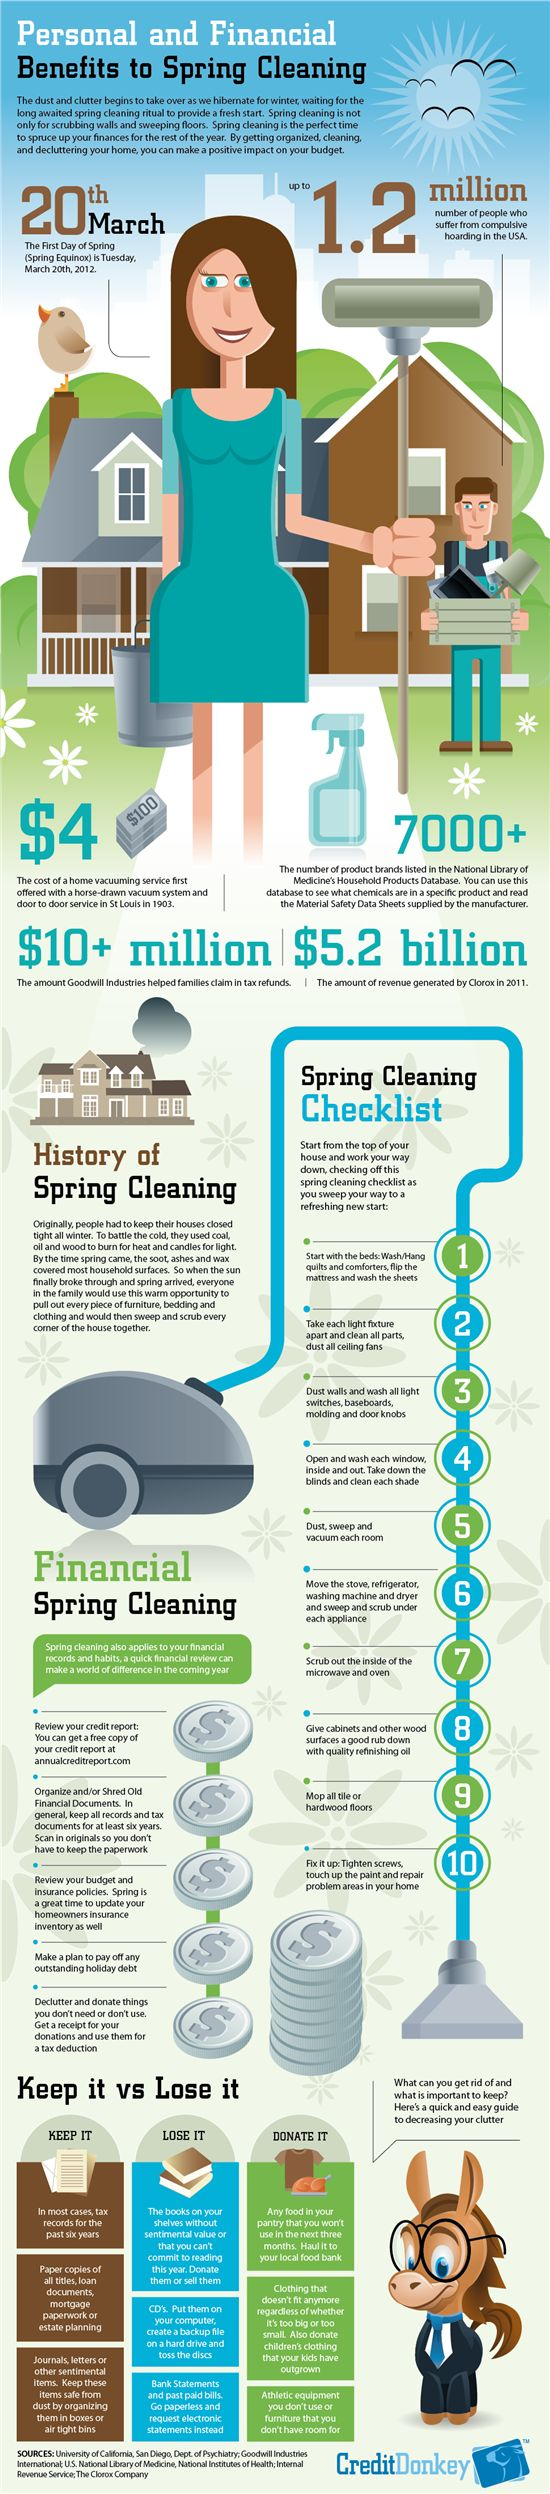 Personal-And-Financial-Benefits-to-Spring-Cleaning-Infographic